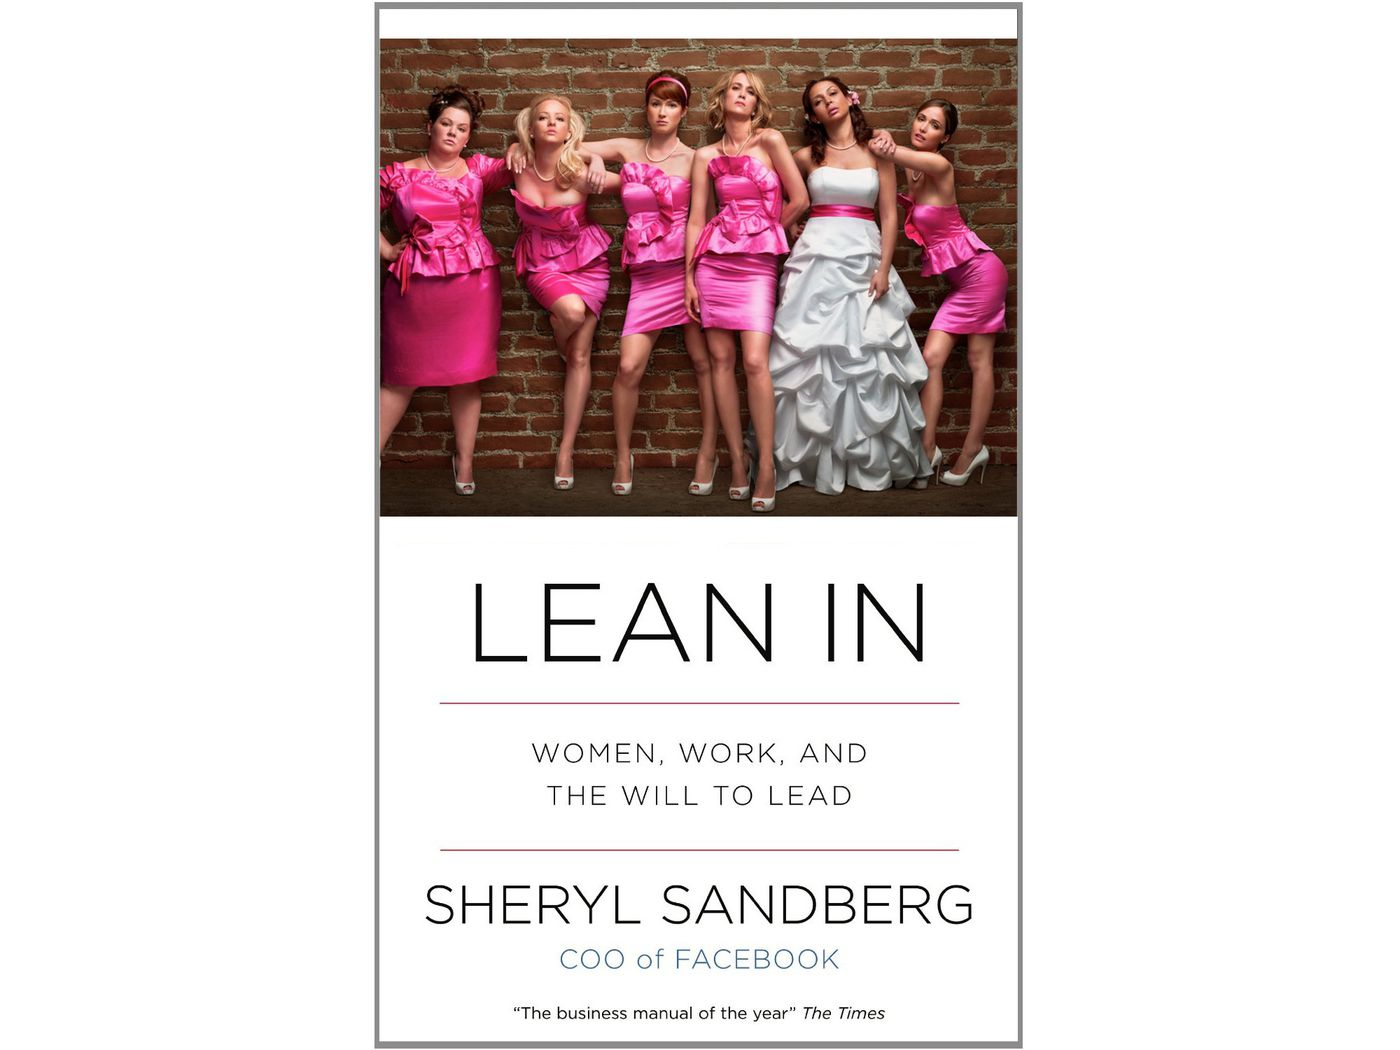 Lean In' movie written by Nell Scovell, based on Sheryl